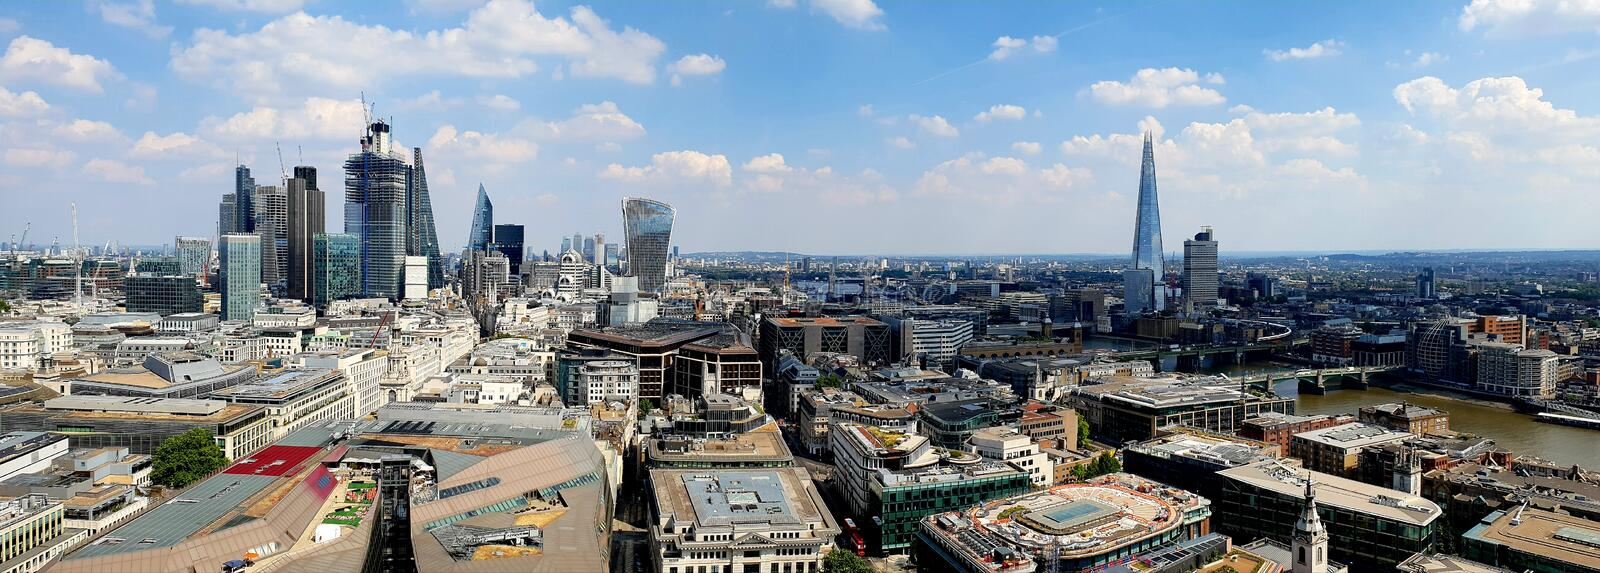 City of London seen from St Pauls Cathedral royalty free stock image